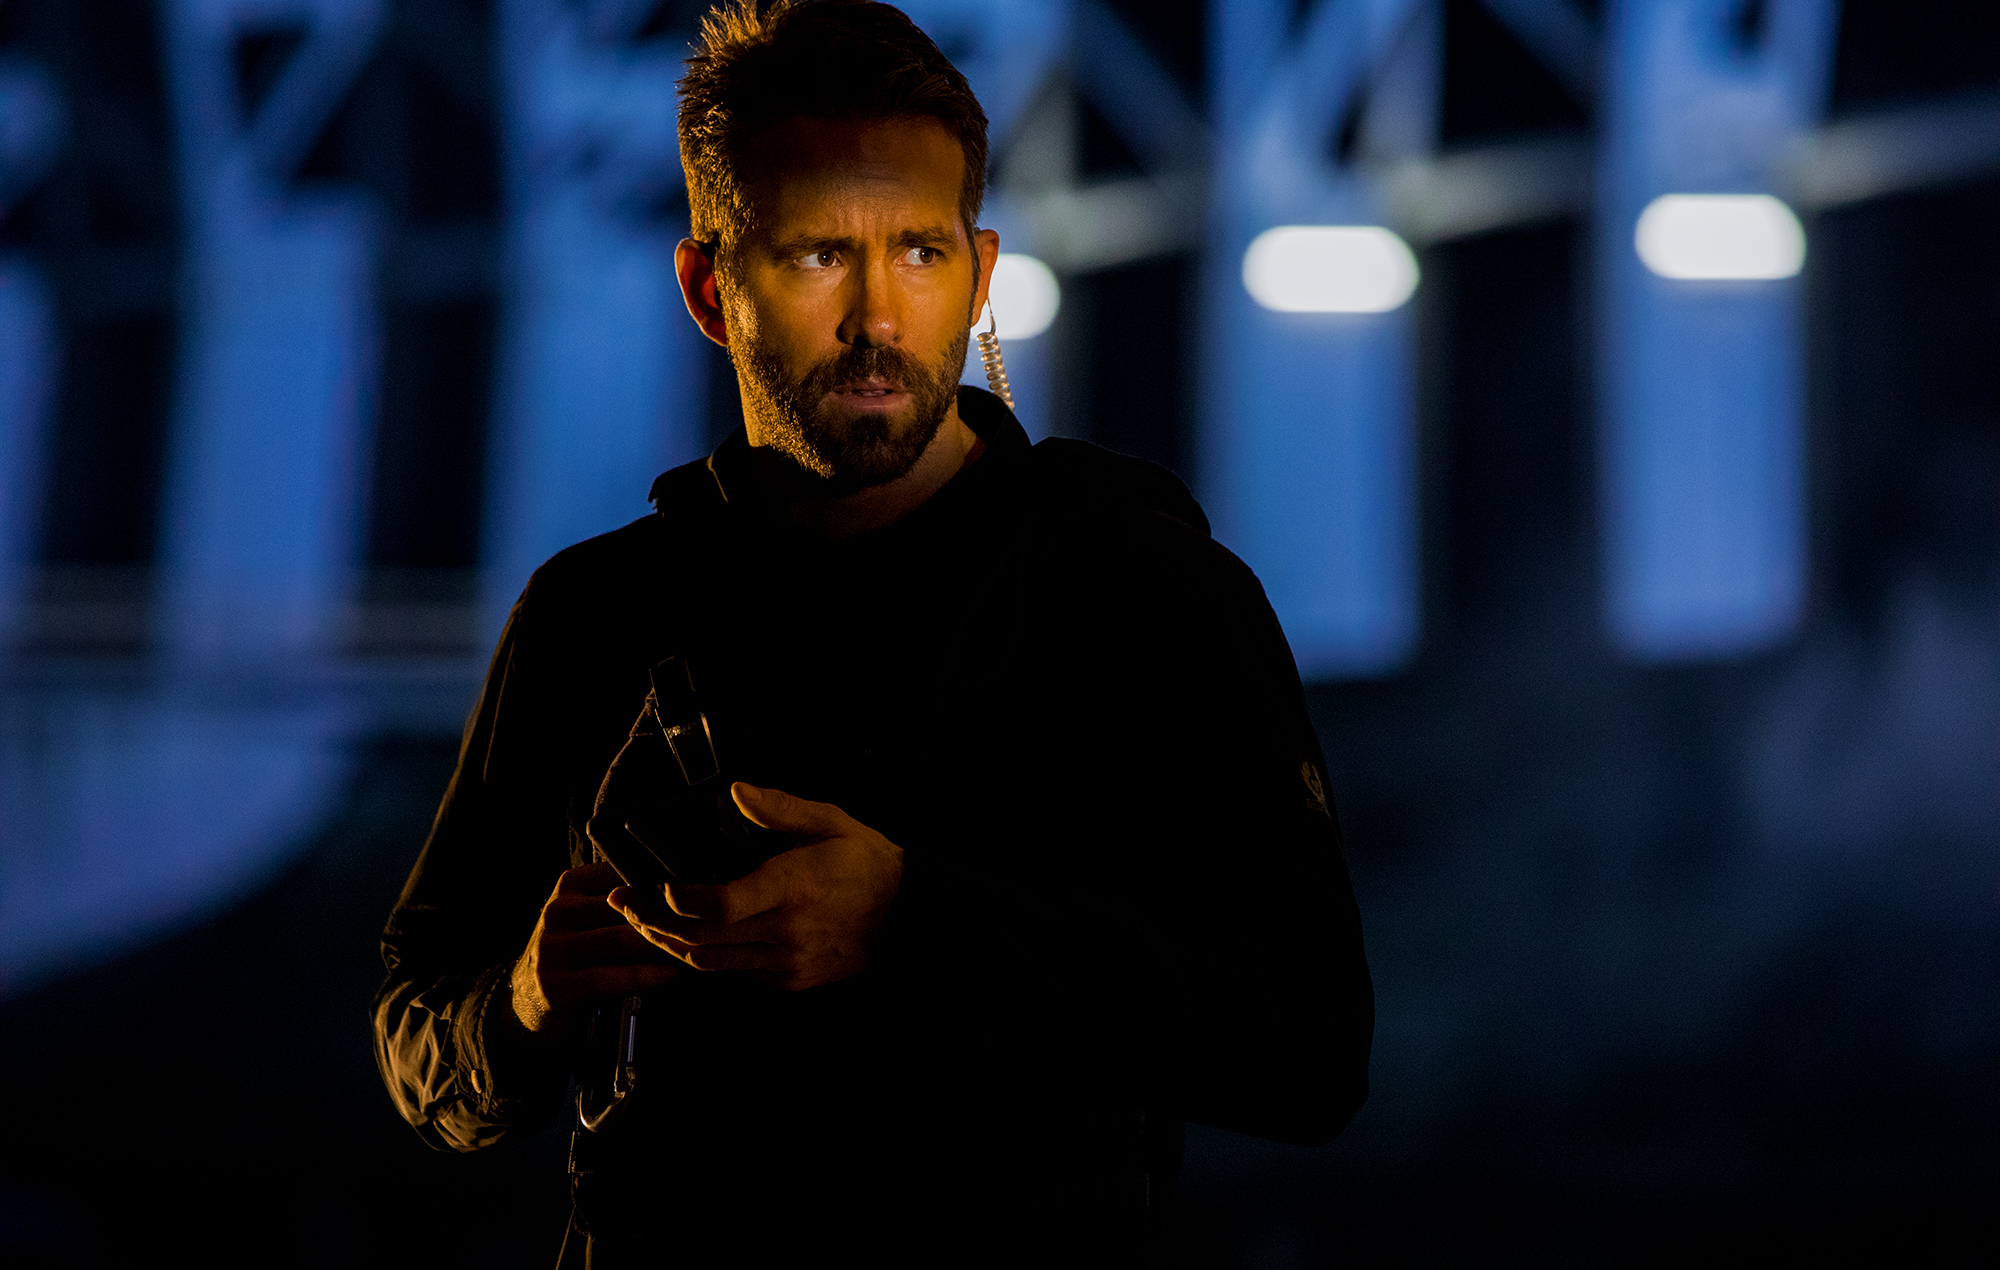 '6 Underground' review: second-rate Michael Bay thriller from Netflix